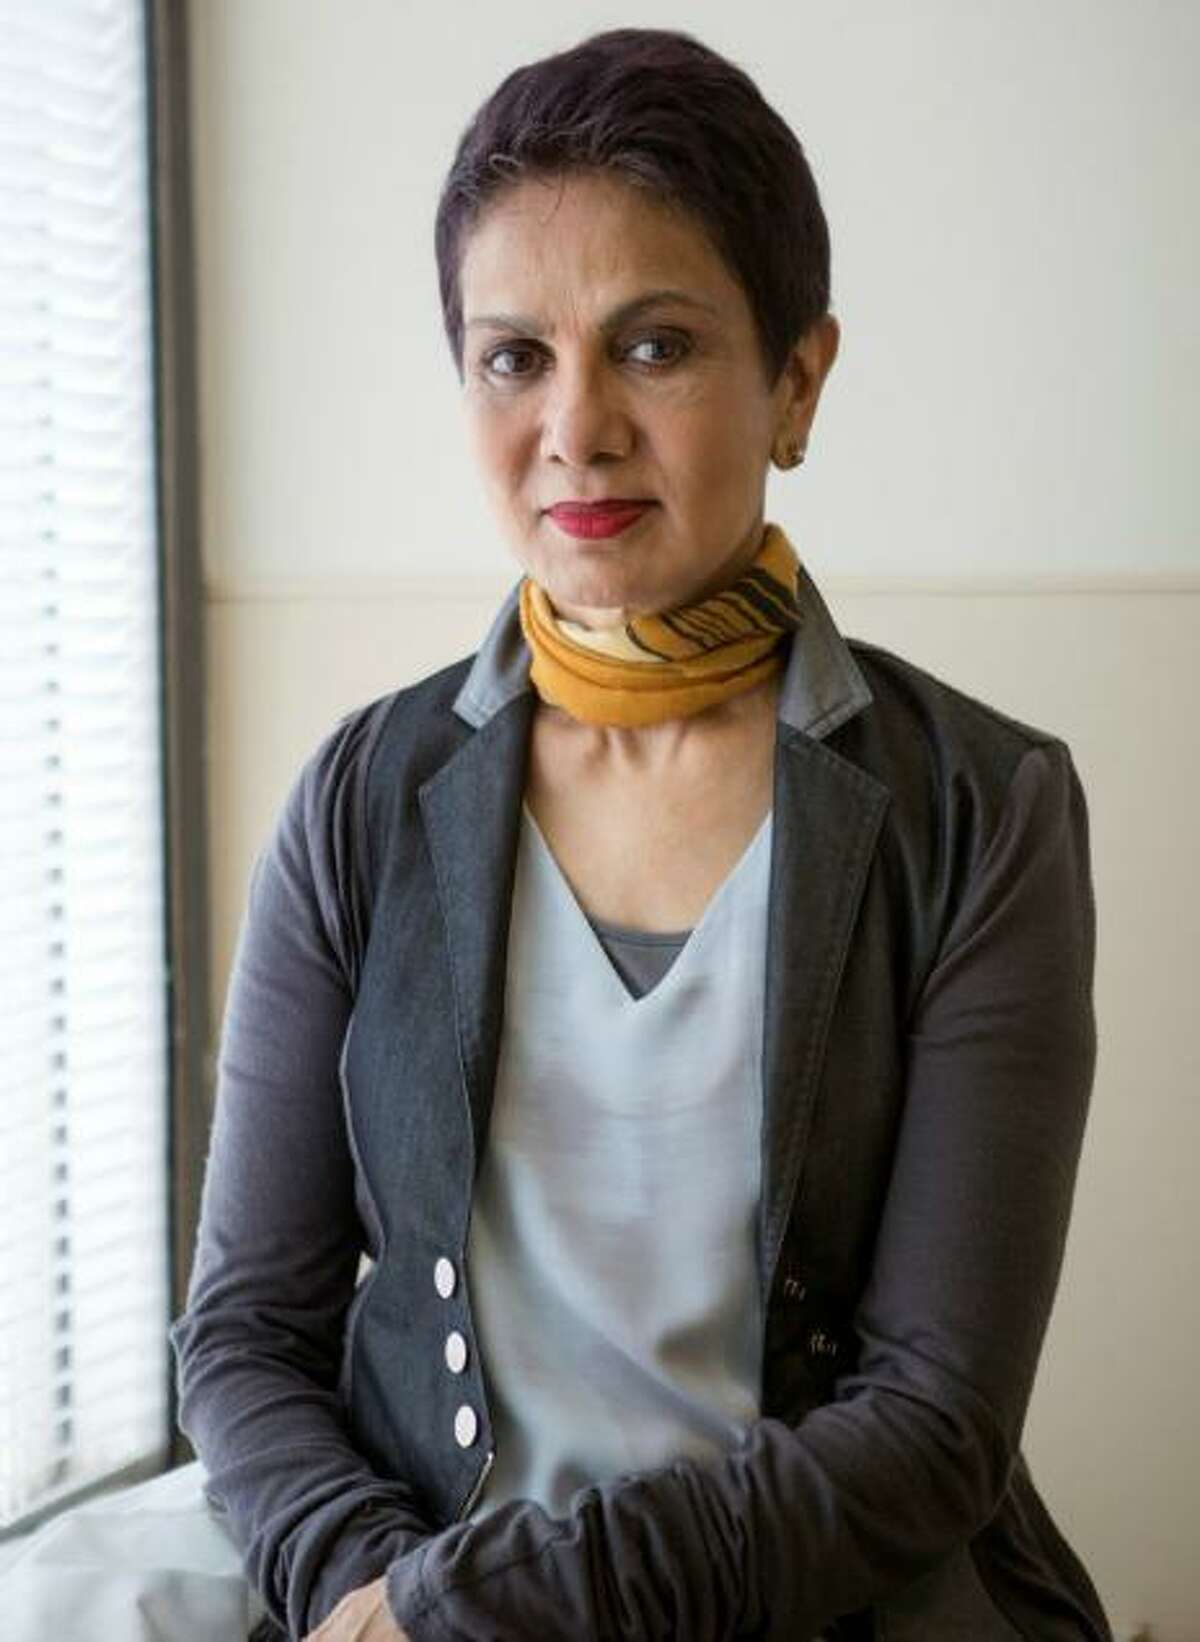 Dr. Azra Raza, a world-class oncologist, professor and author was the first speaker of the New Canaan Library's first Trustees' Lecture event on Sunday, January 26, 2020.